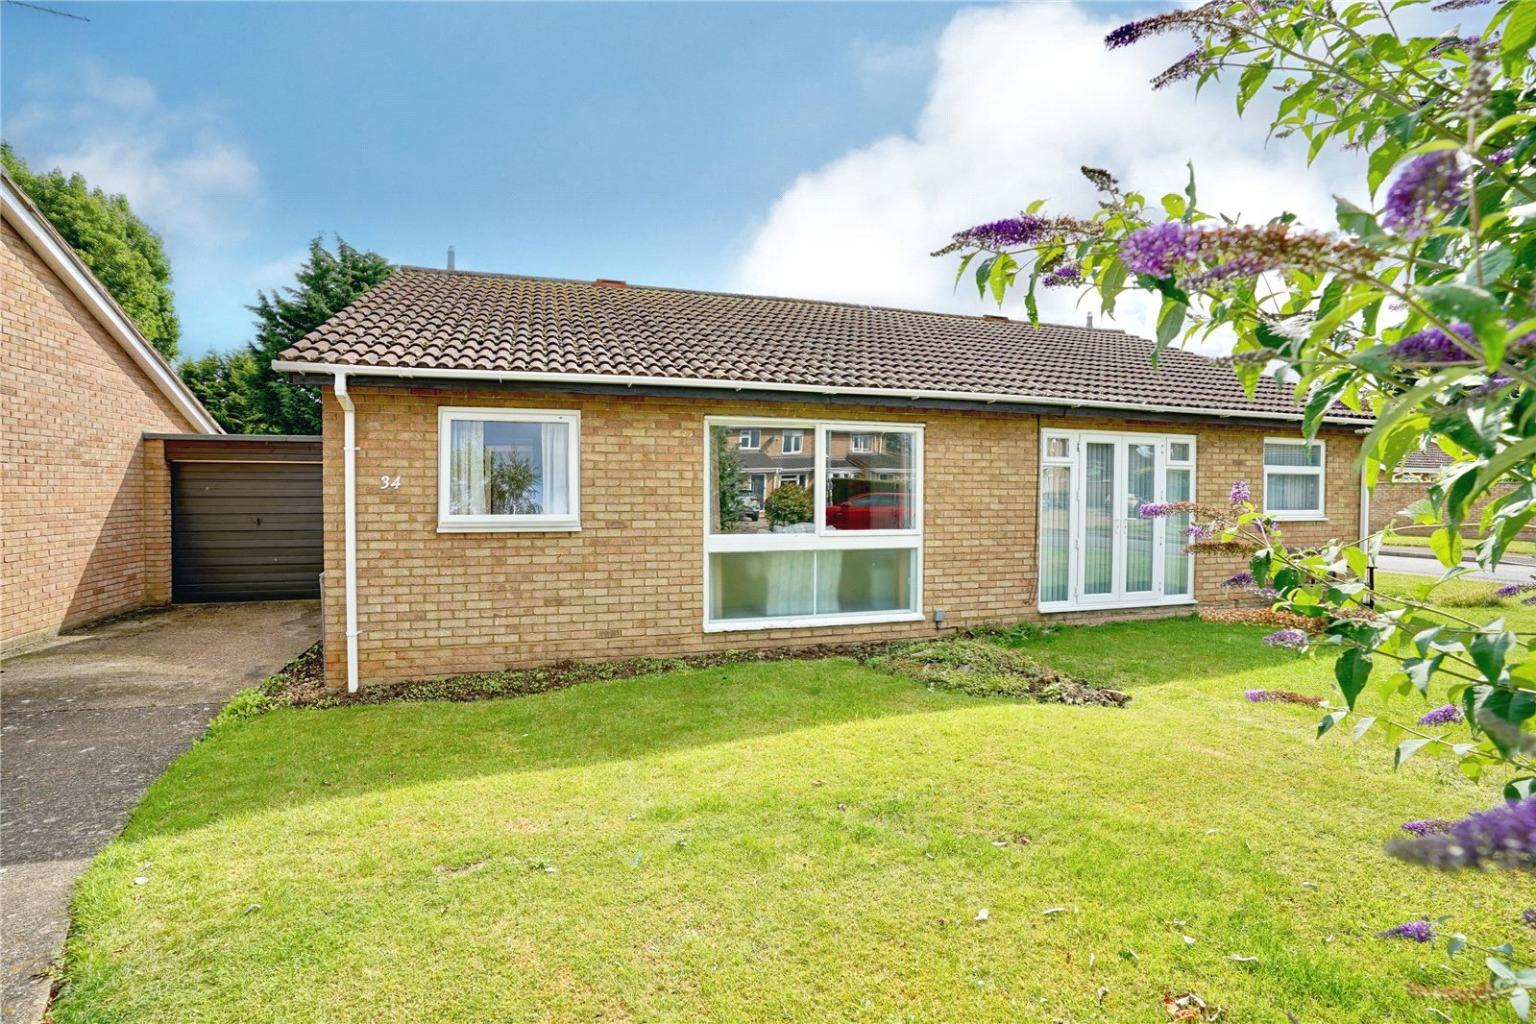 2 bed semi-detached bungalow for sale in Simpkin Close, St. Neots  - Property Image 1